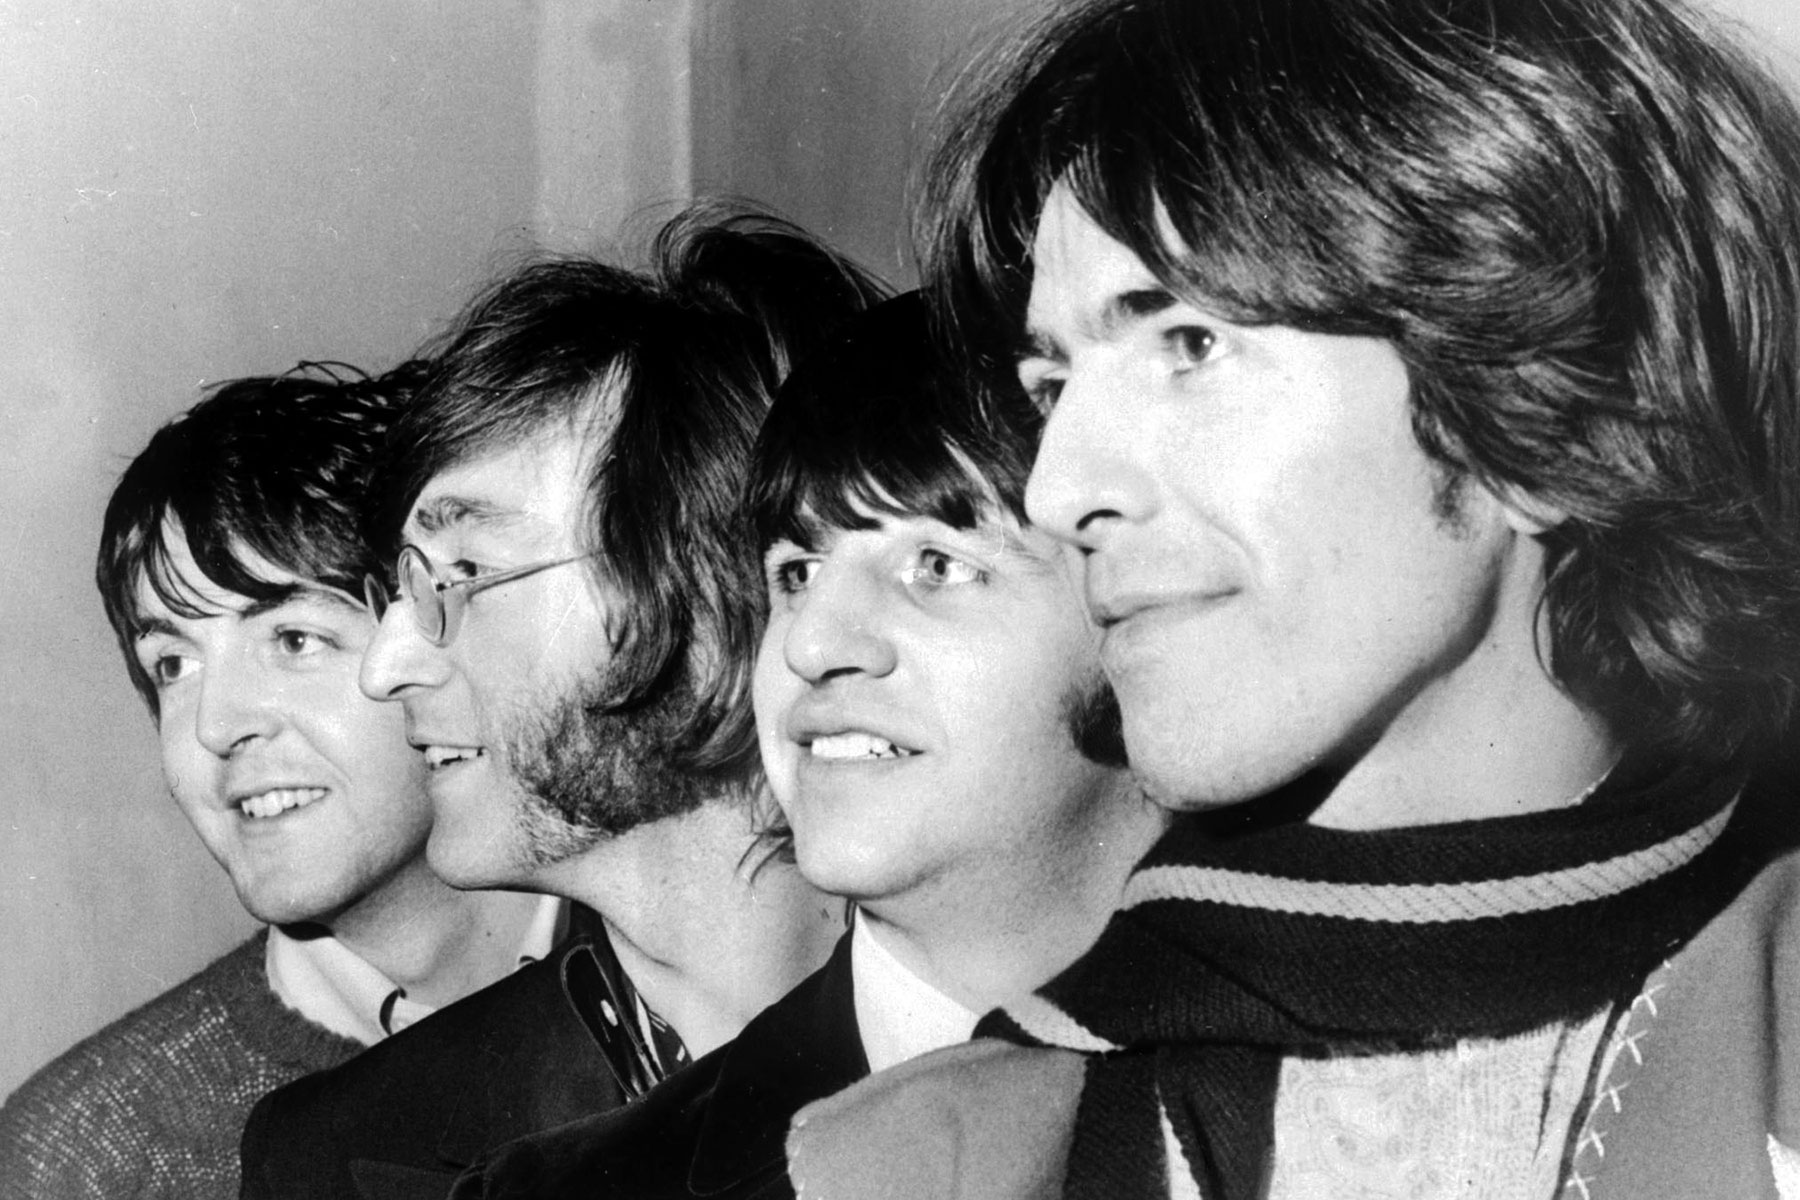 'Hey Jude' at 50: Celebrating the Beatles' Most Open-Hearted Masterpiece